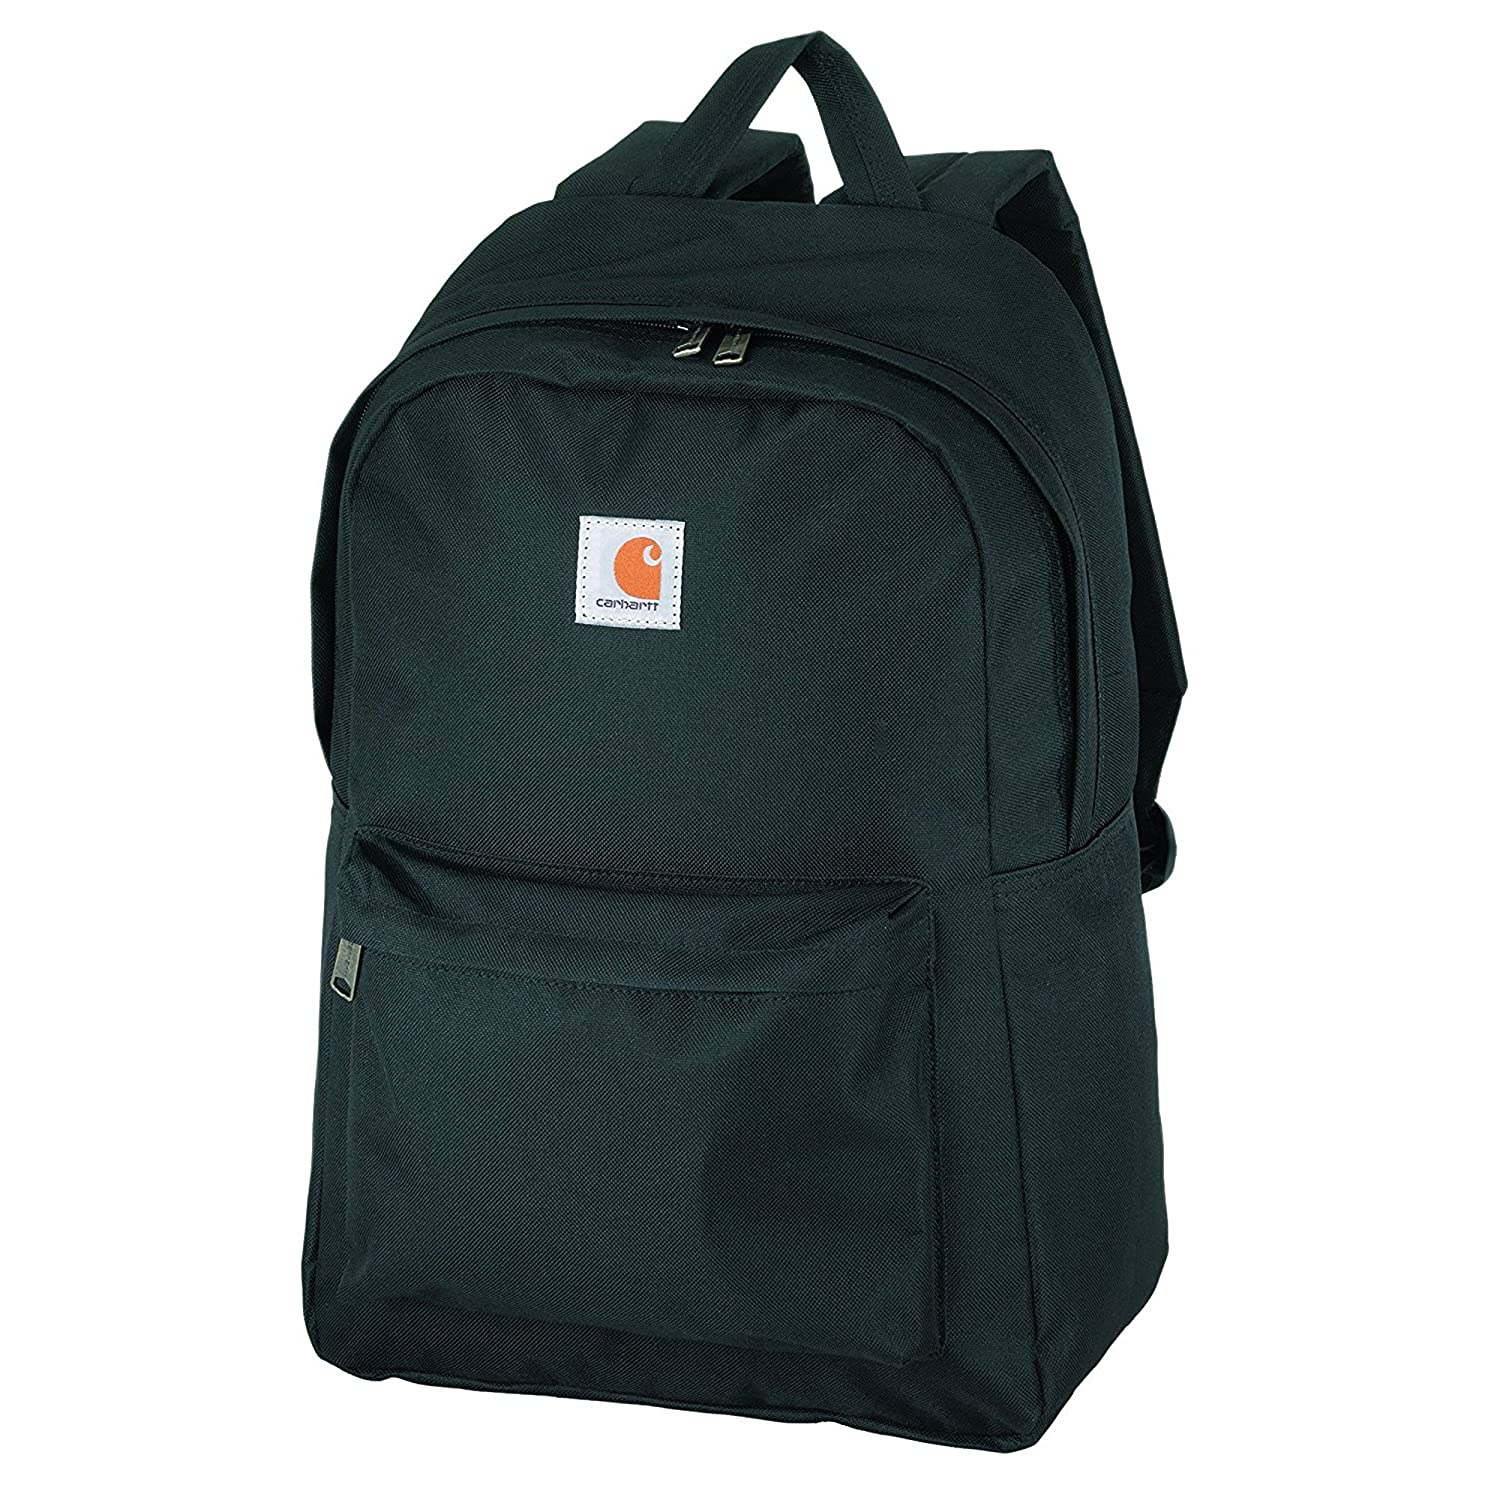 Carhartt Trade Series Backpack, Black 5 Horizons Group 8910030101